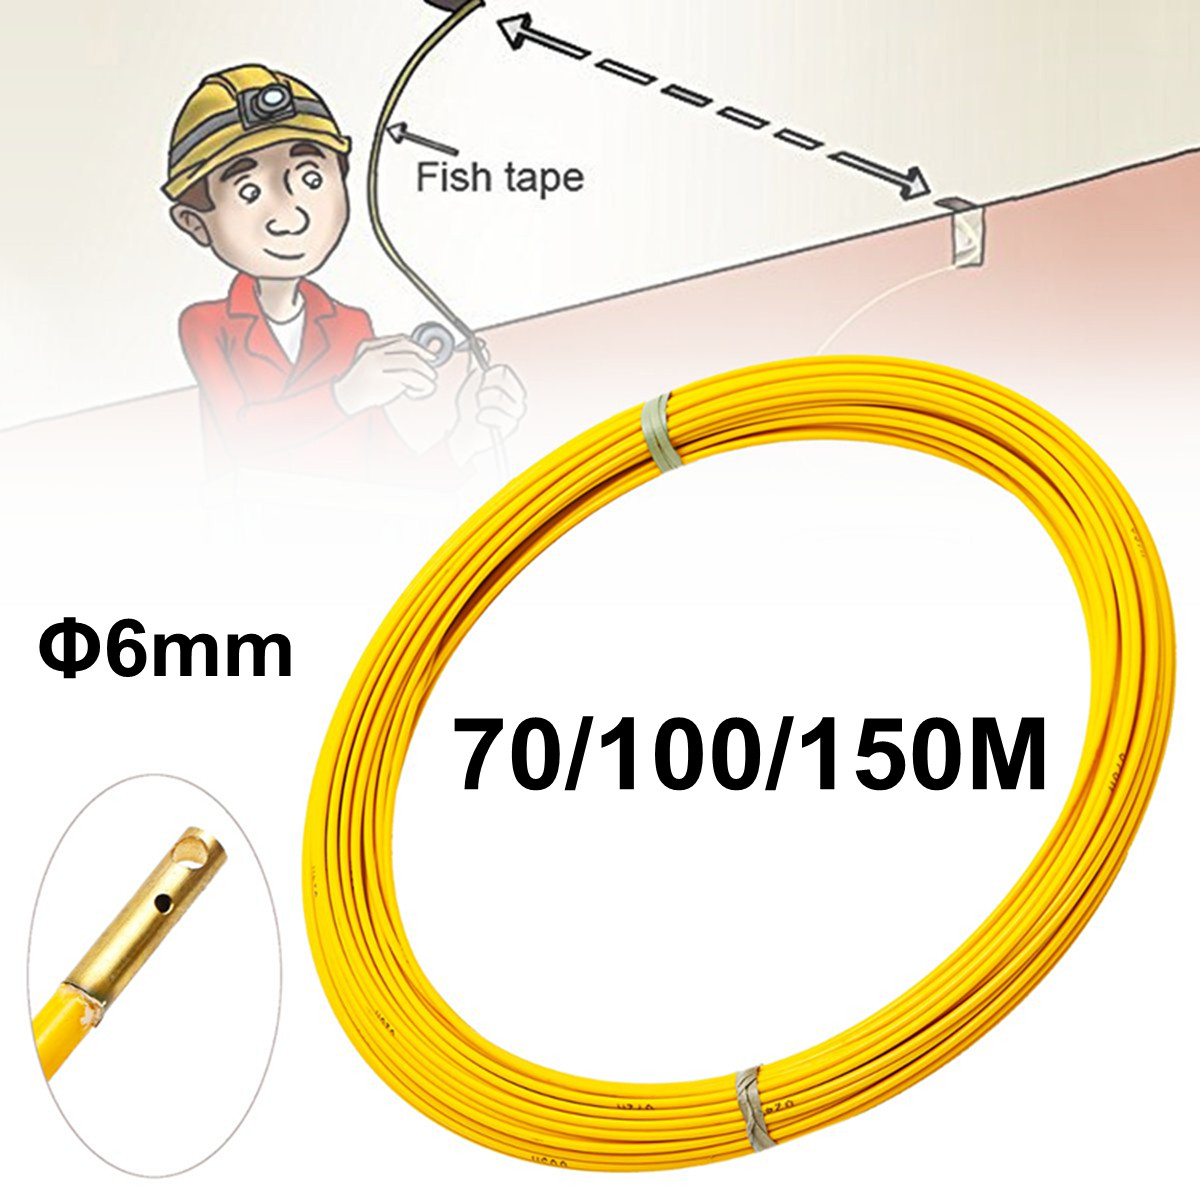 Fiberglass Cable Puller Wire Fish Tape Conduit Duct Rodder Yellow Electrical Equipment Wiring Accessories 6mm 70/100/150mFiberglass Cable Puller Wire Fish Tape Conduit Duct Rodder Yellow Electrical Equipment Wiring Accessories 6mm 70/100/150m